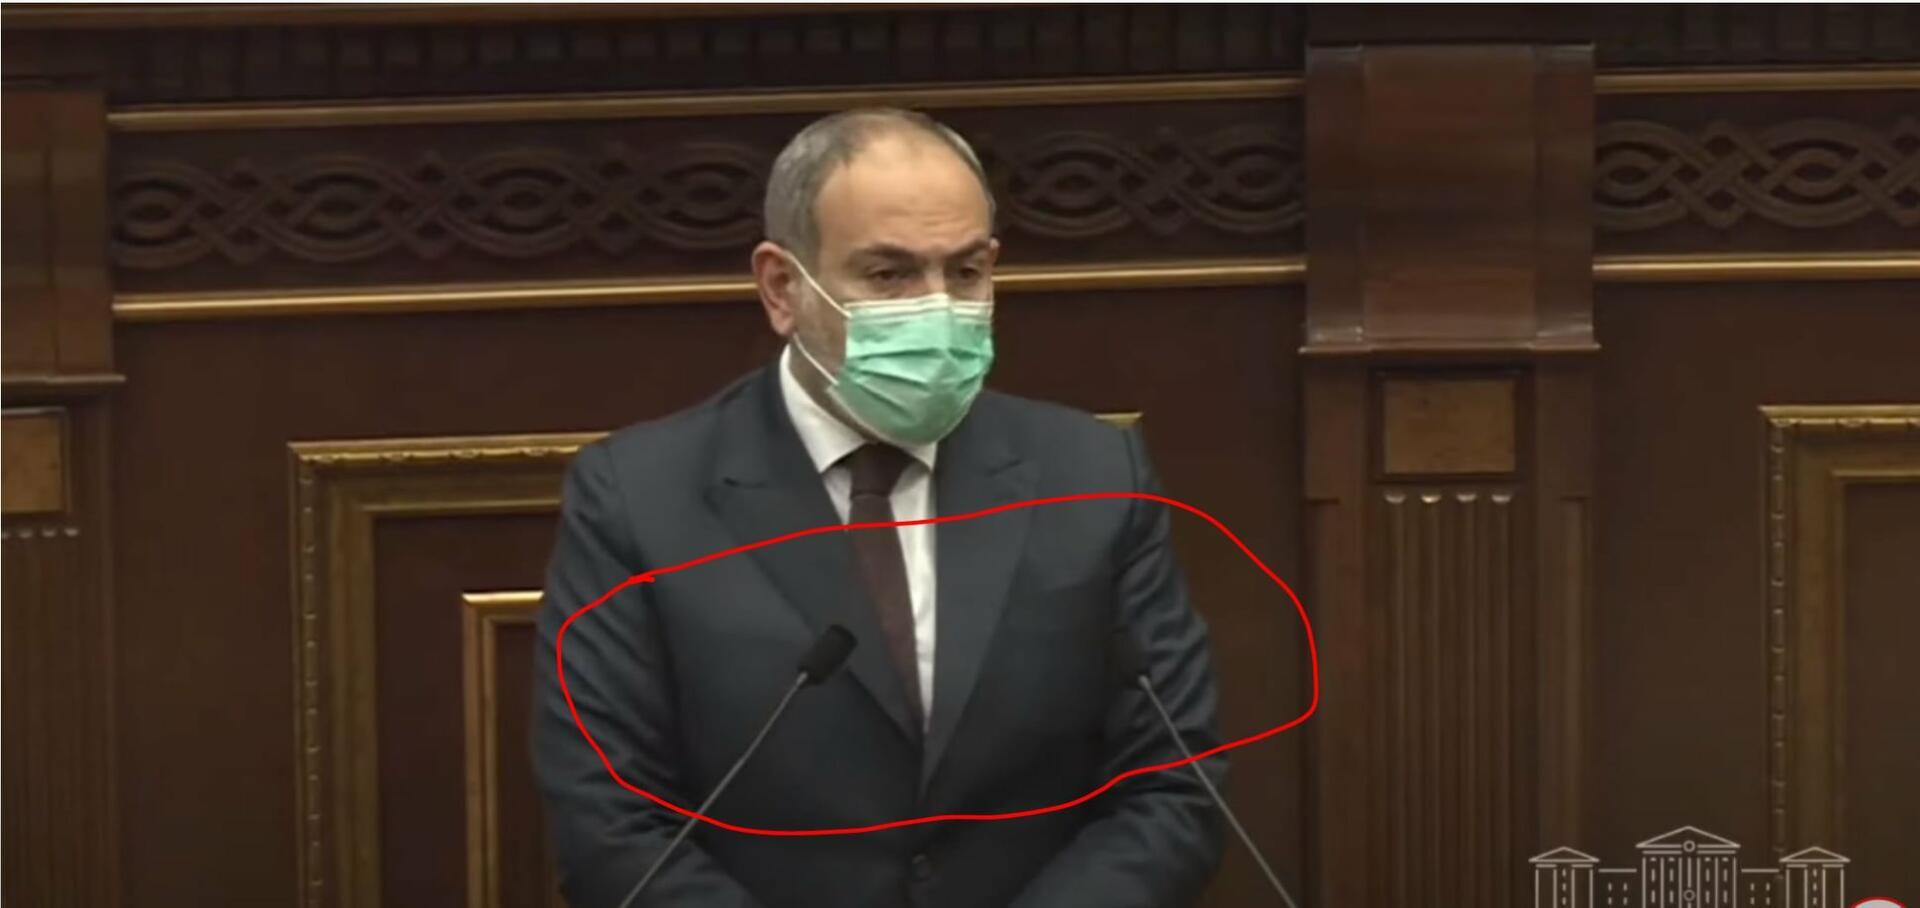 Pashinyan came to parliamentary session in an armored vest